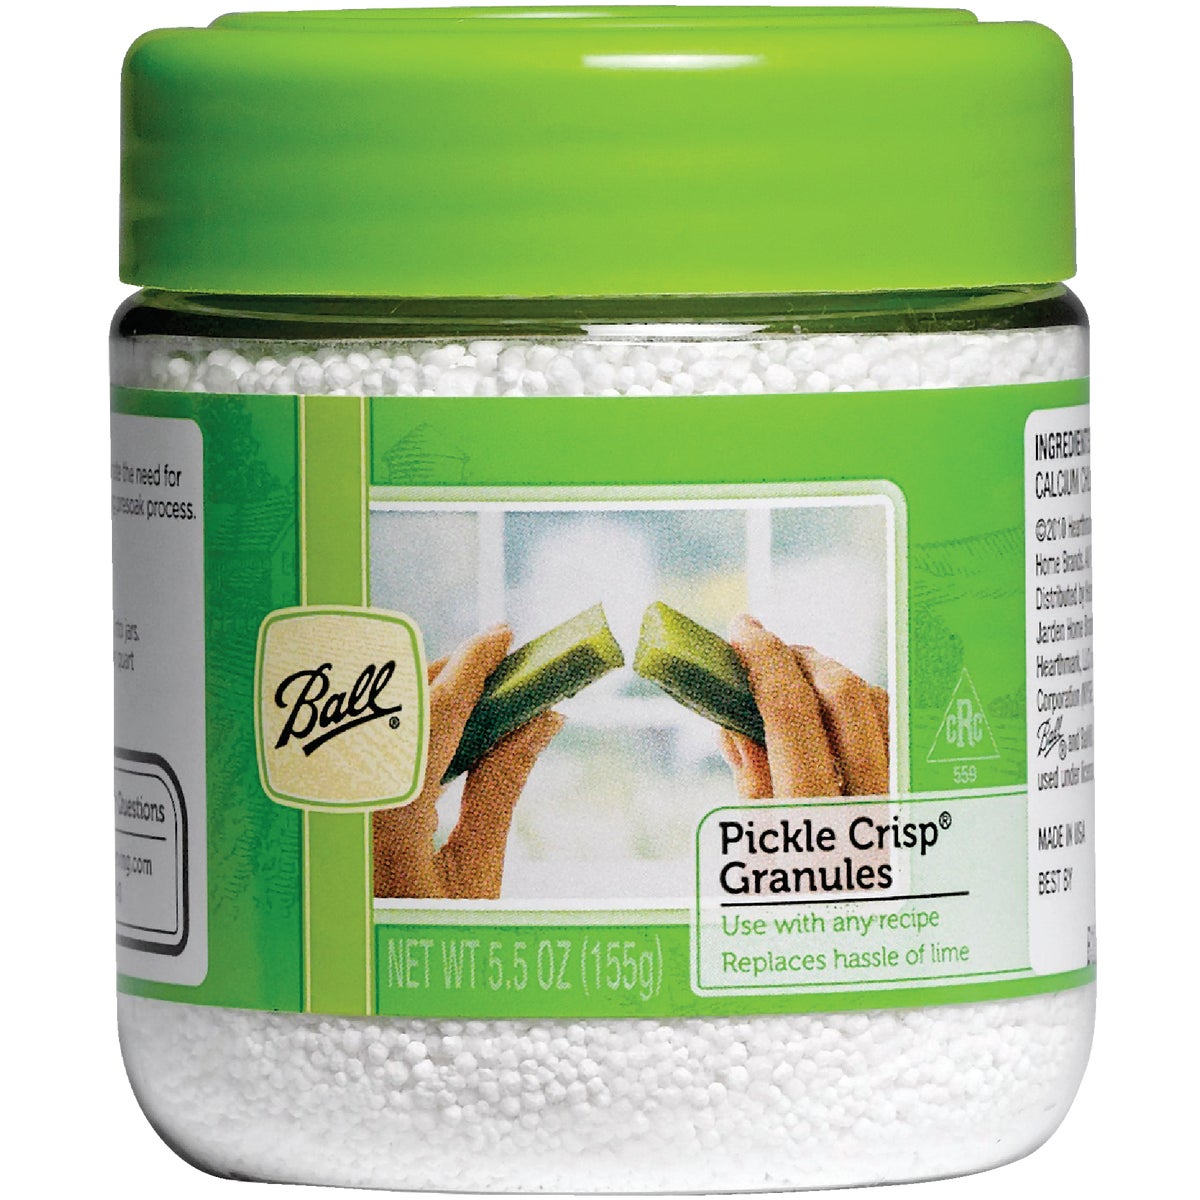 PICKLE CRISP GRANULES - 1440072750 by Jarden Home Brands